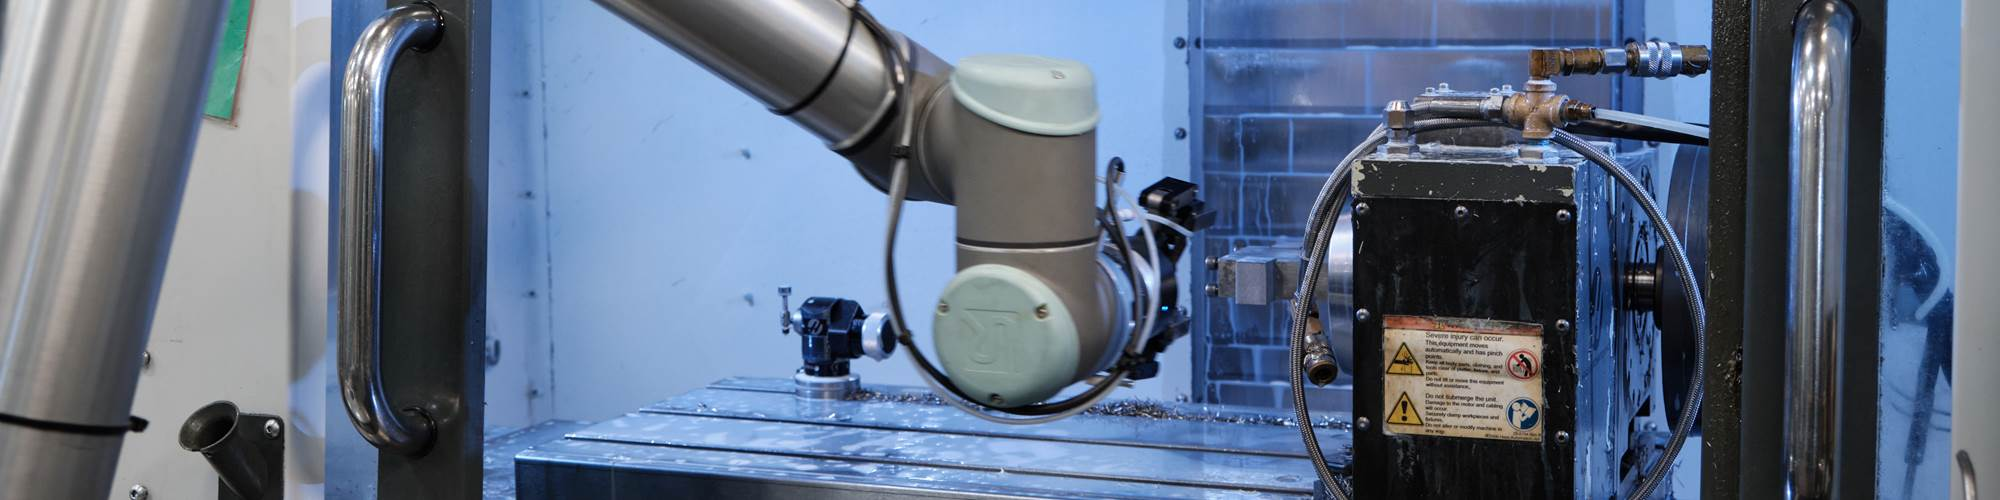 A collaborative robot loads a quick-change fixture into a machine tool at Rimeco Products.